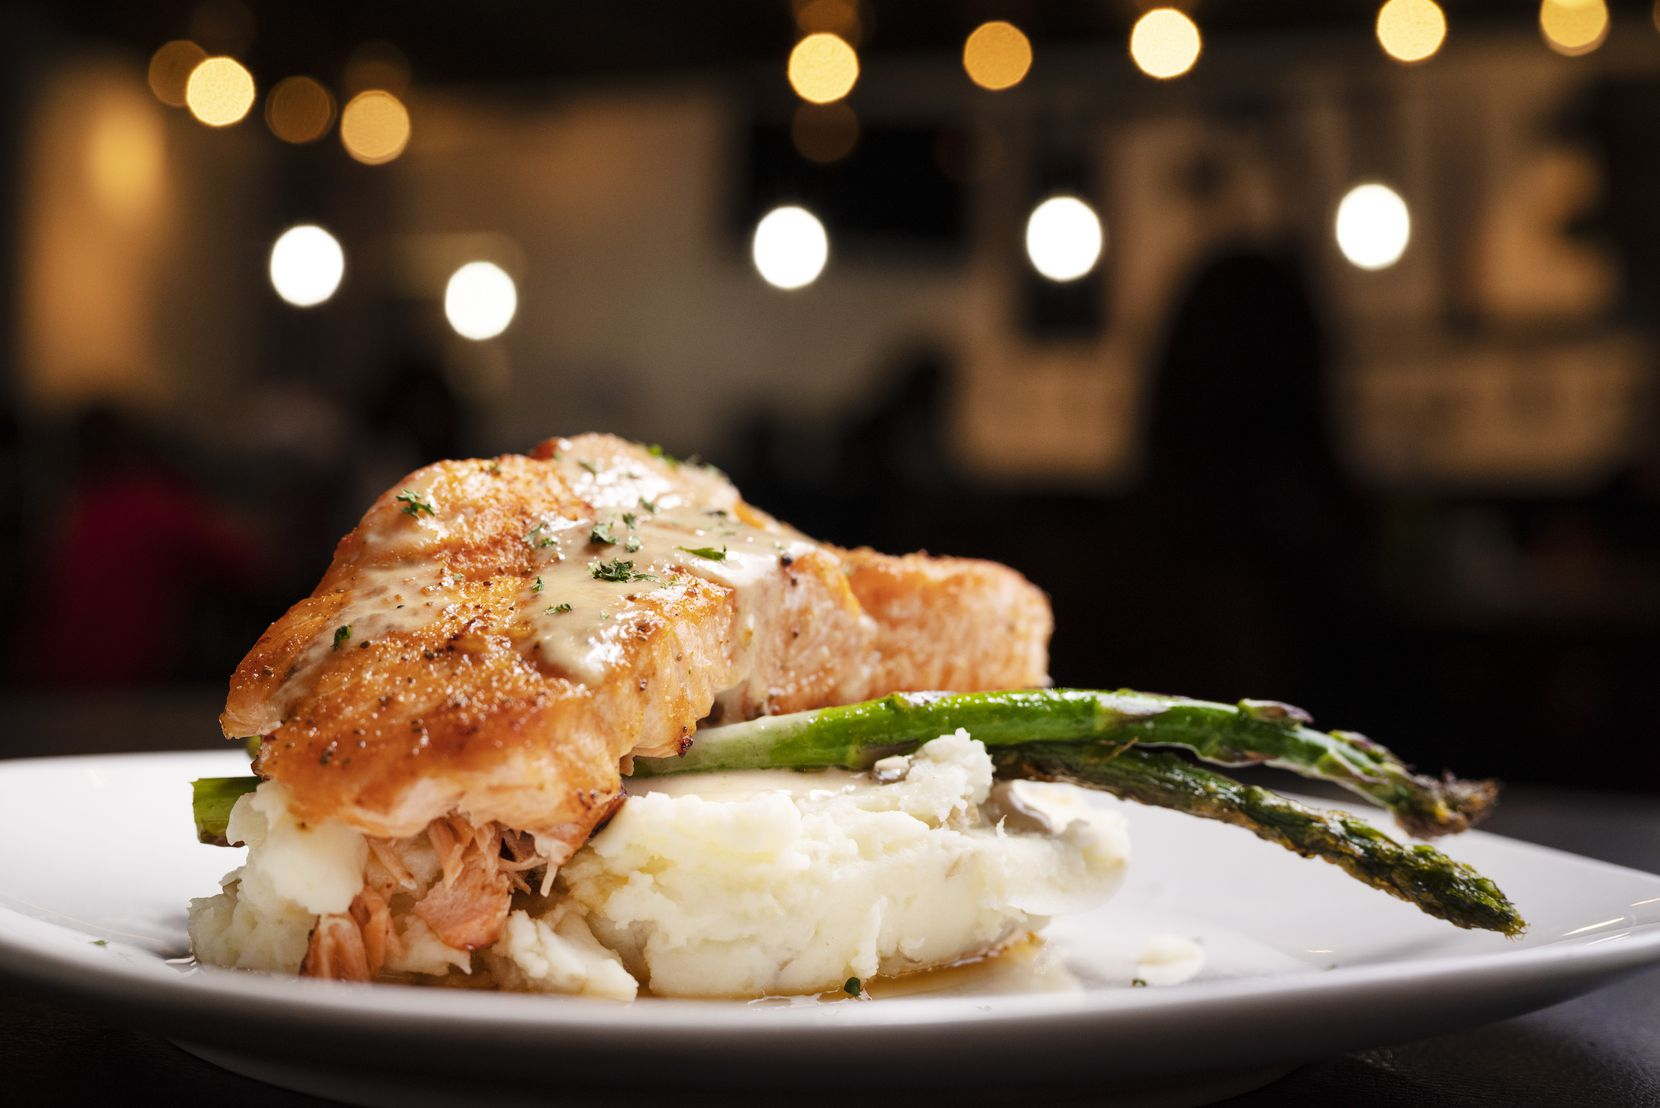 Creamed spinach stuffed salmon is one of the dishes on the menu at The Five Experience restaurant in Dallas.